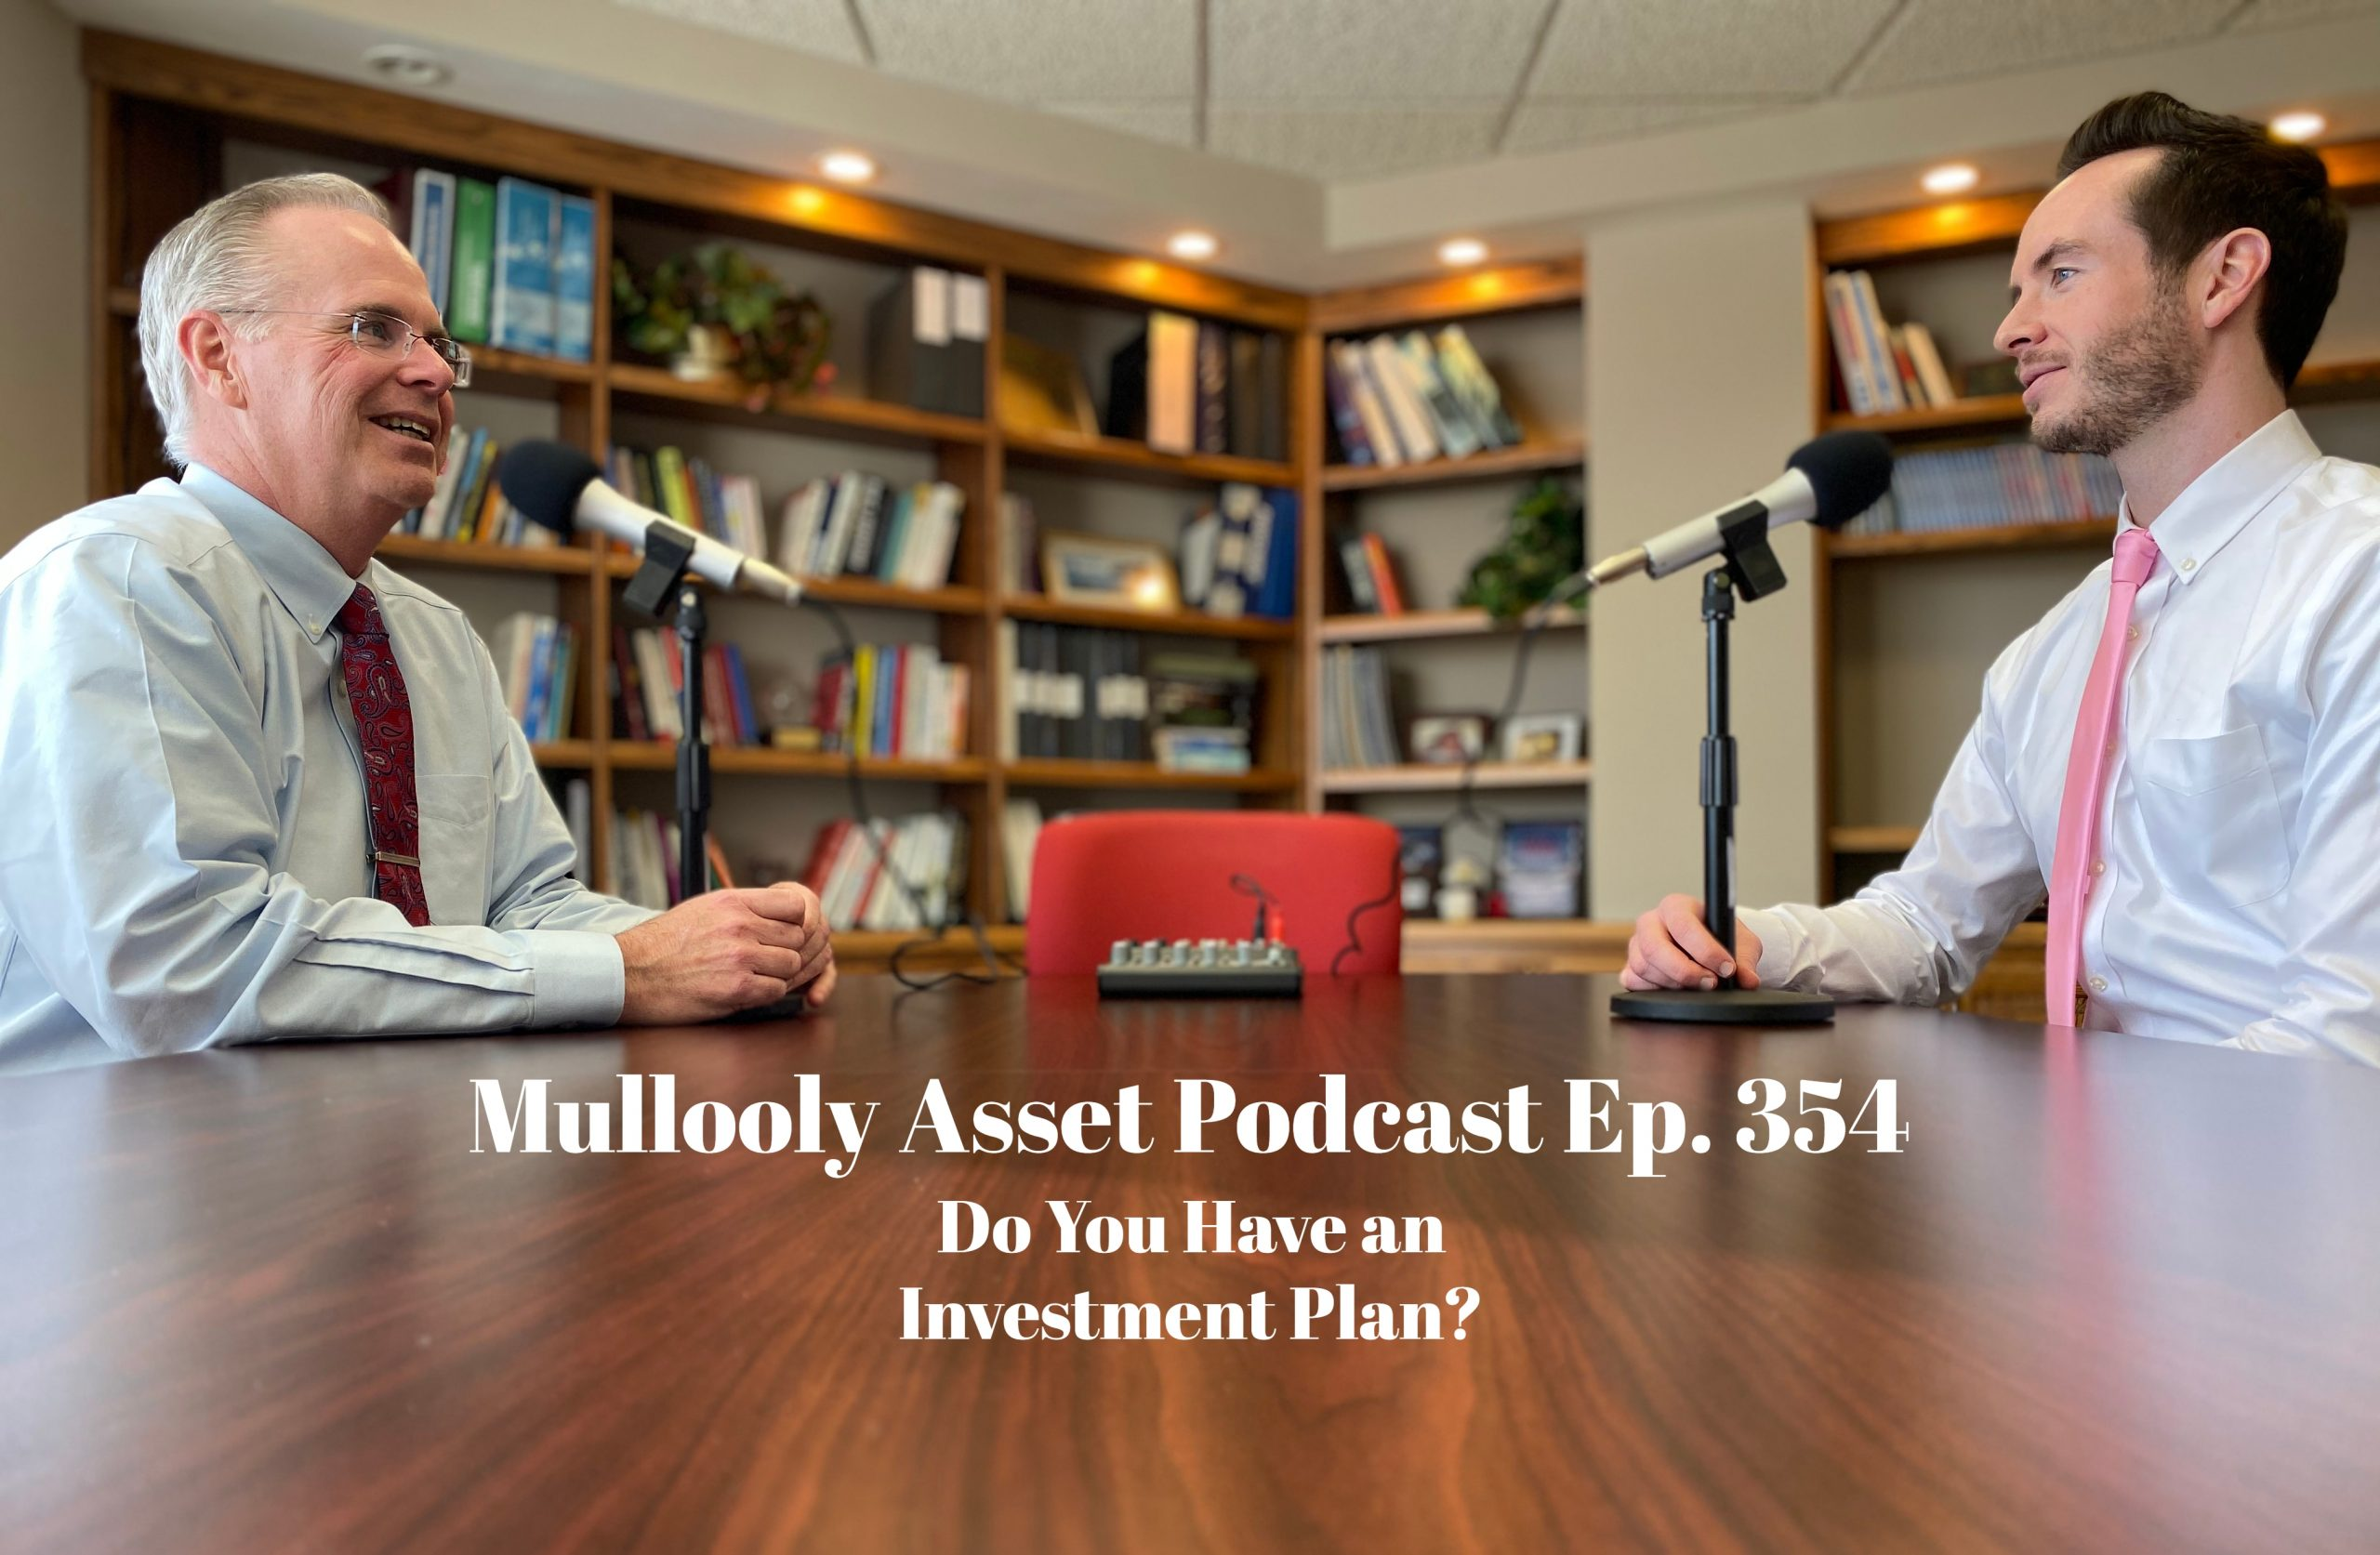 Do You Have an Investment Plan?